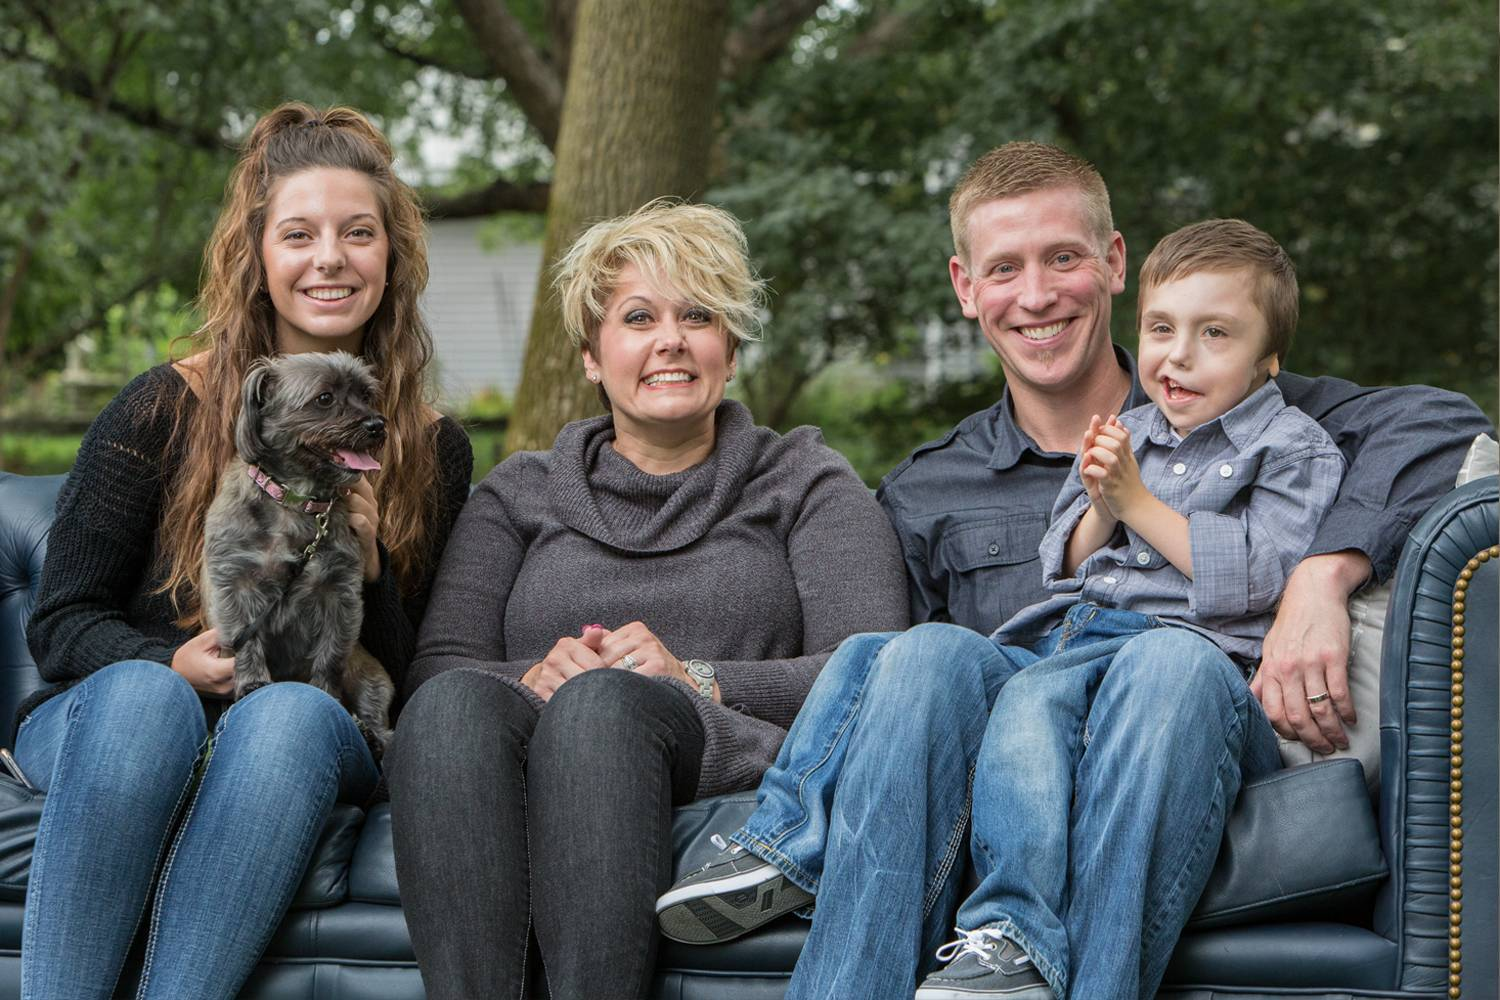 Bentley with (from left) his sister, Kennedy; his mom, Kris; and his dad, Nathan.